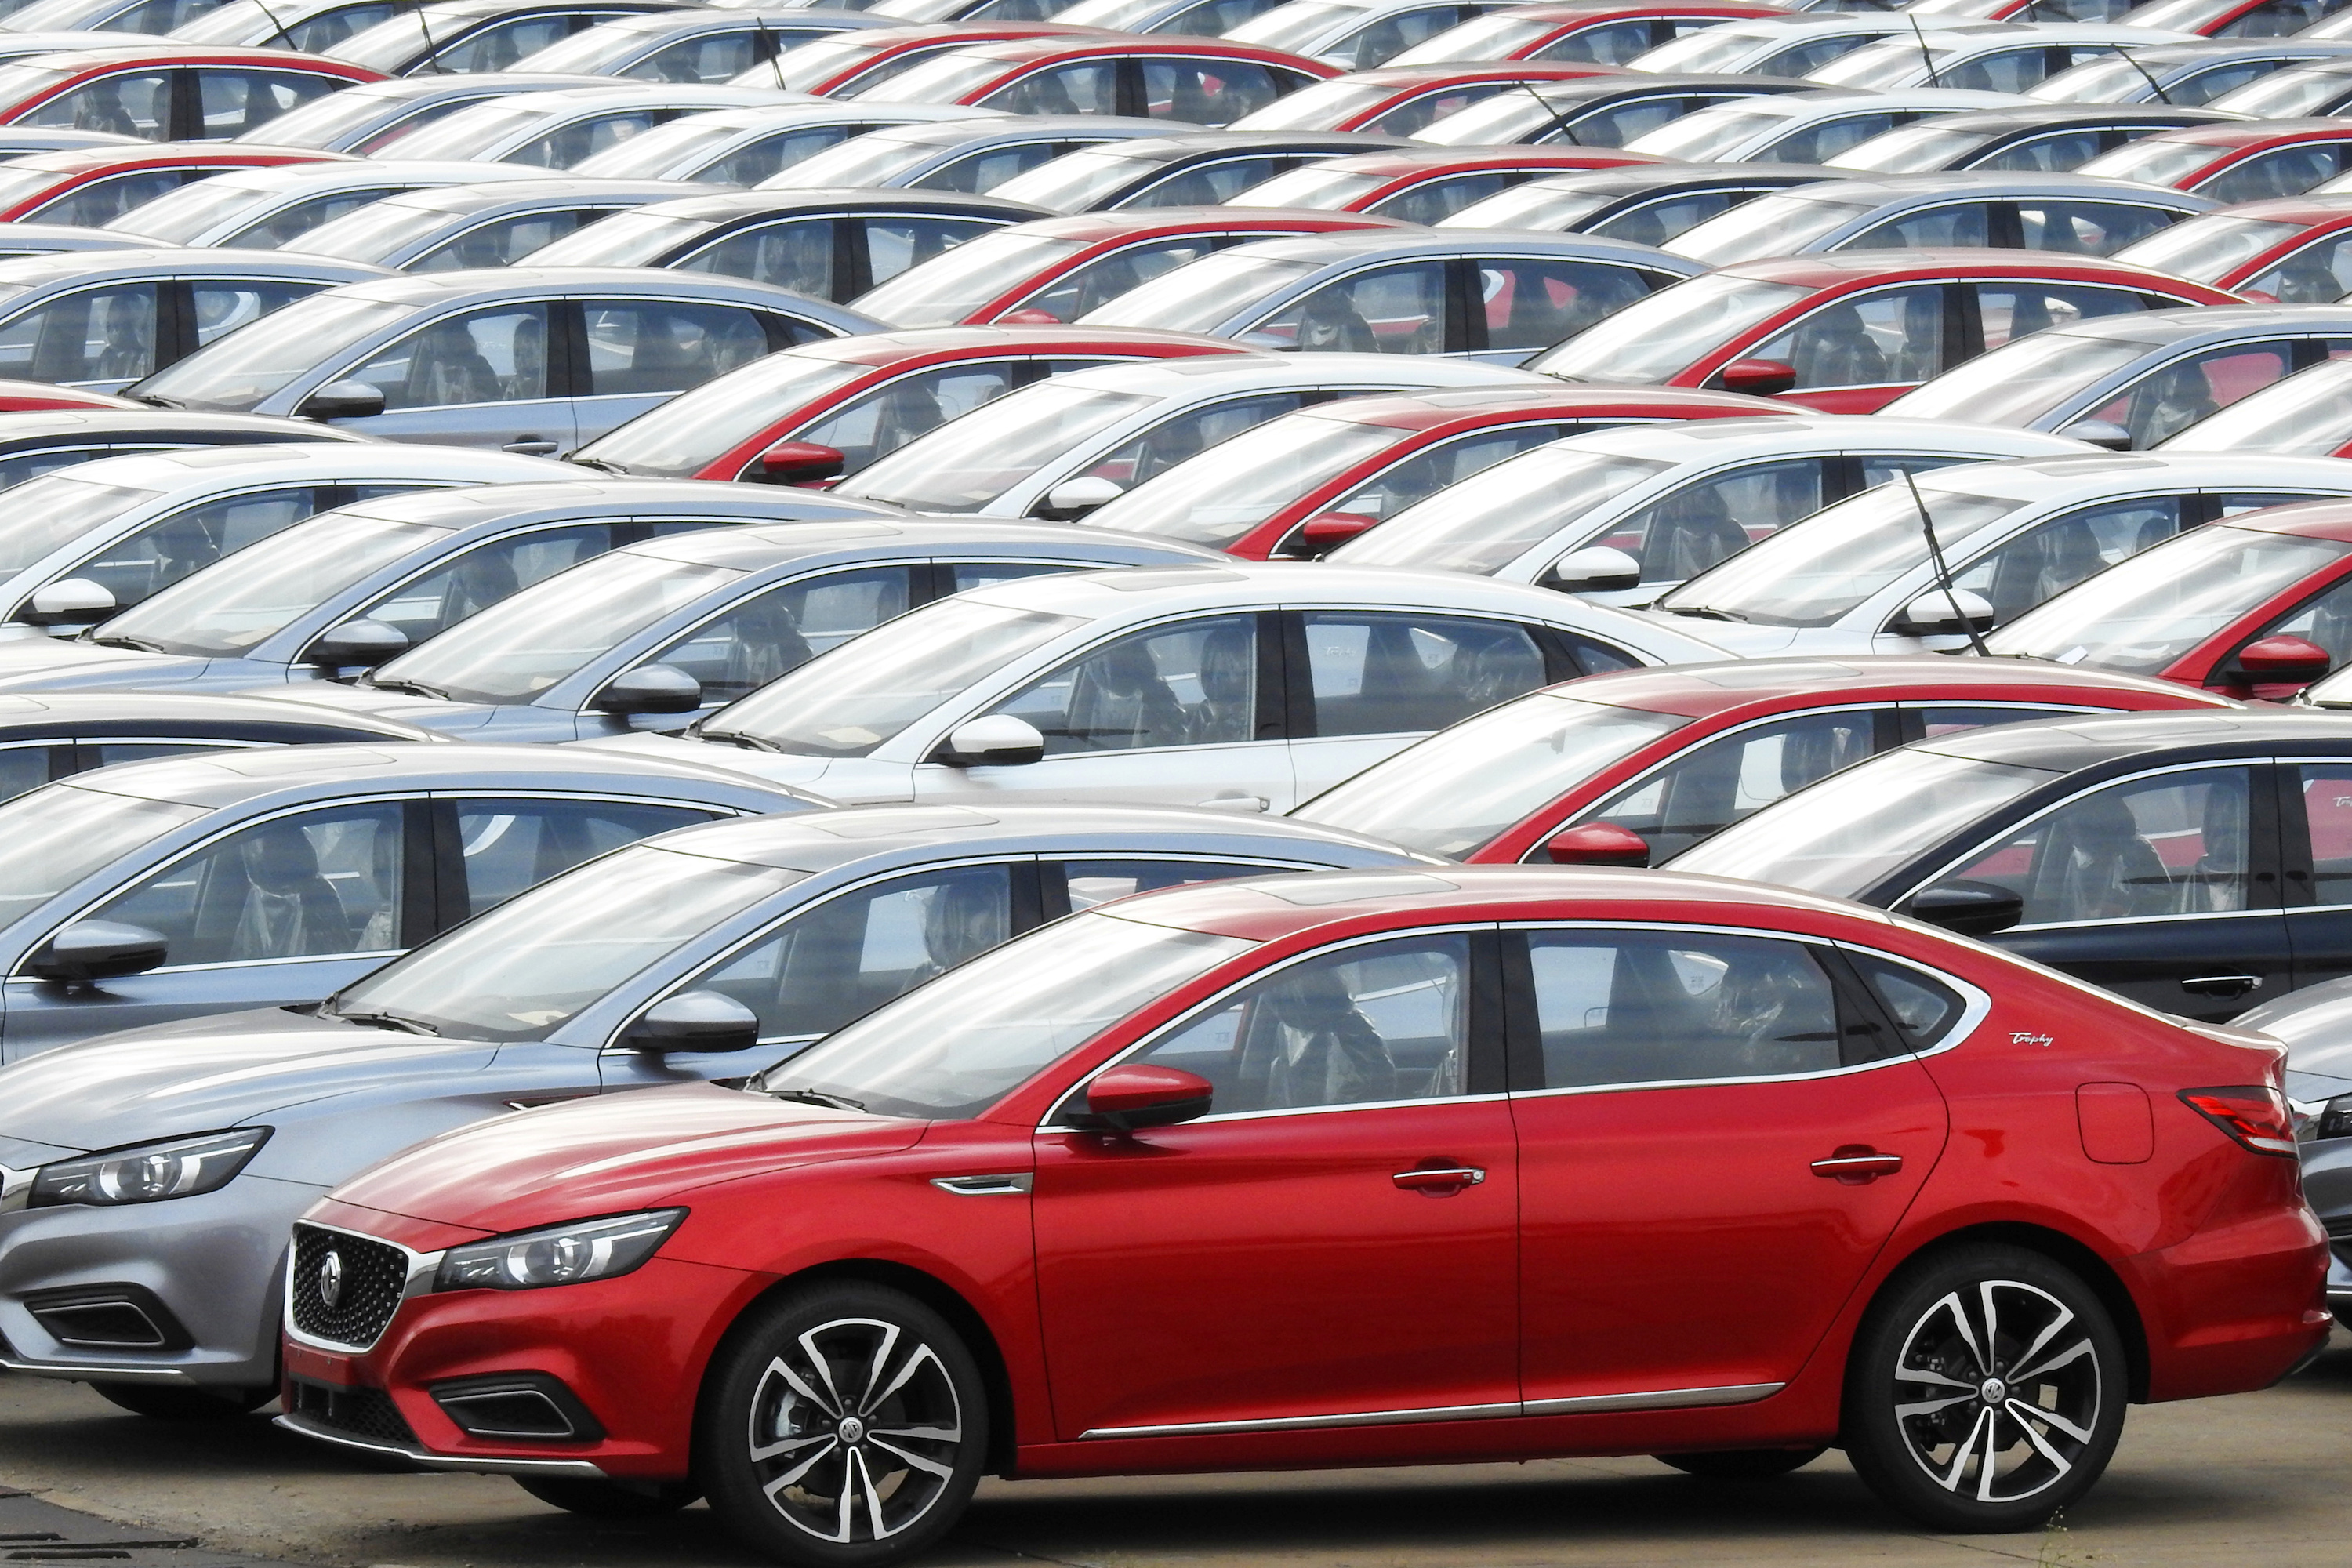 China Auto Sales Drop for 17th Straight Month in November